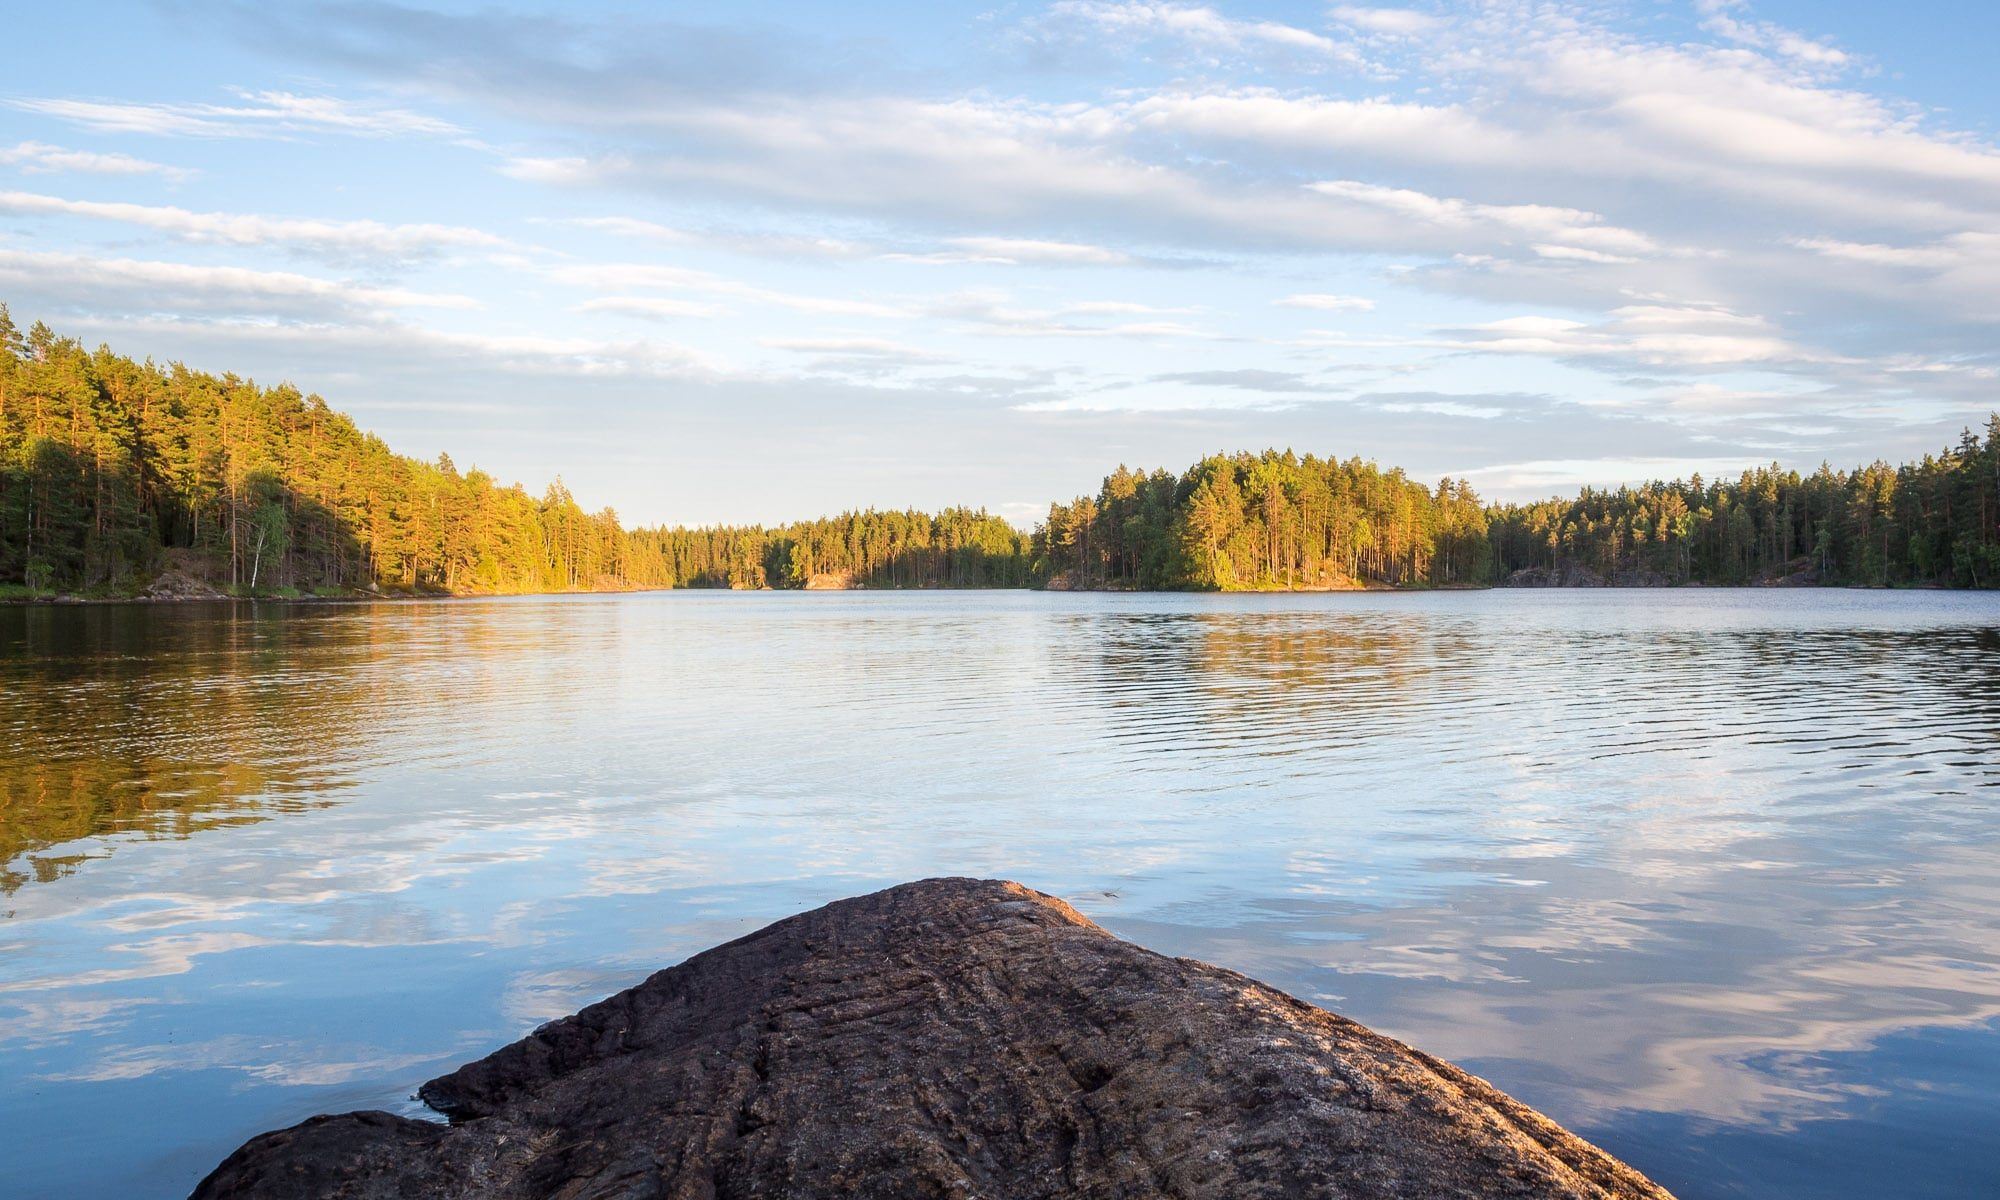 Nuuksio National Park in summer. Relax at the peaceful lakes and swim in the clear waters. Nature near Helsinki, Finland.